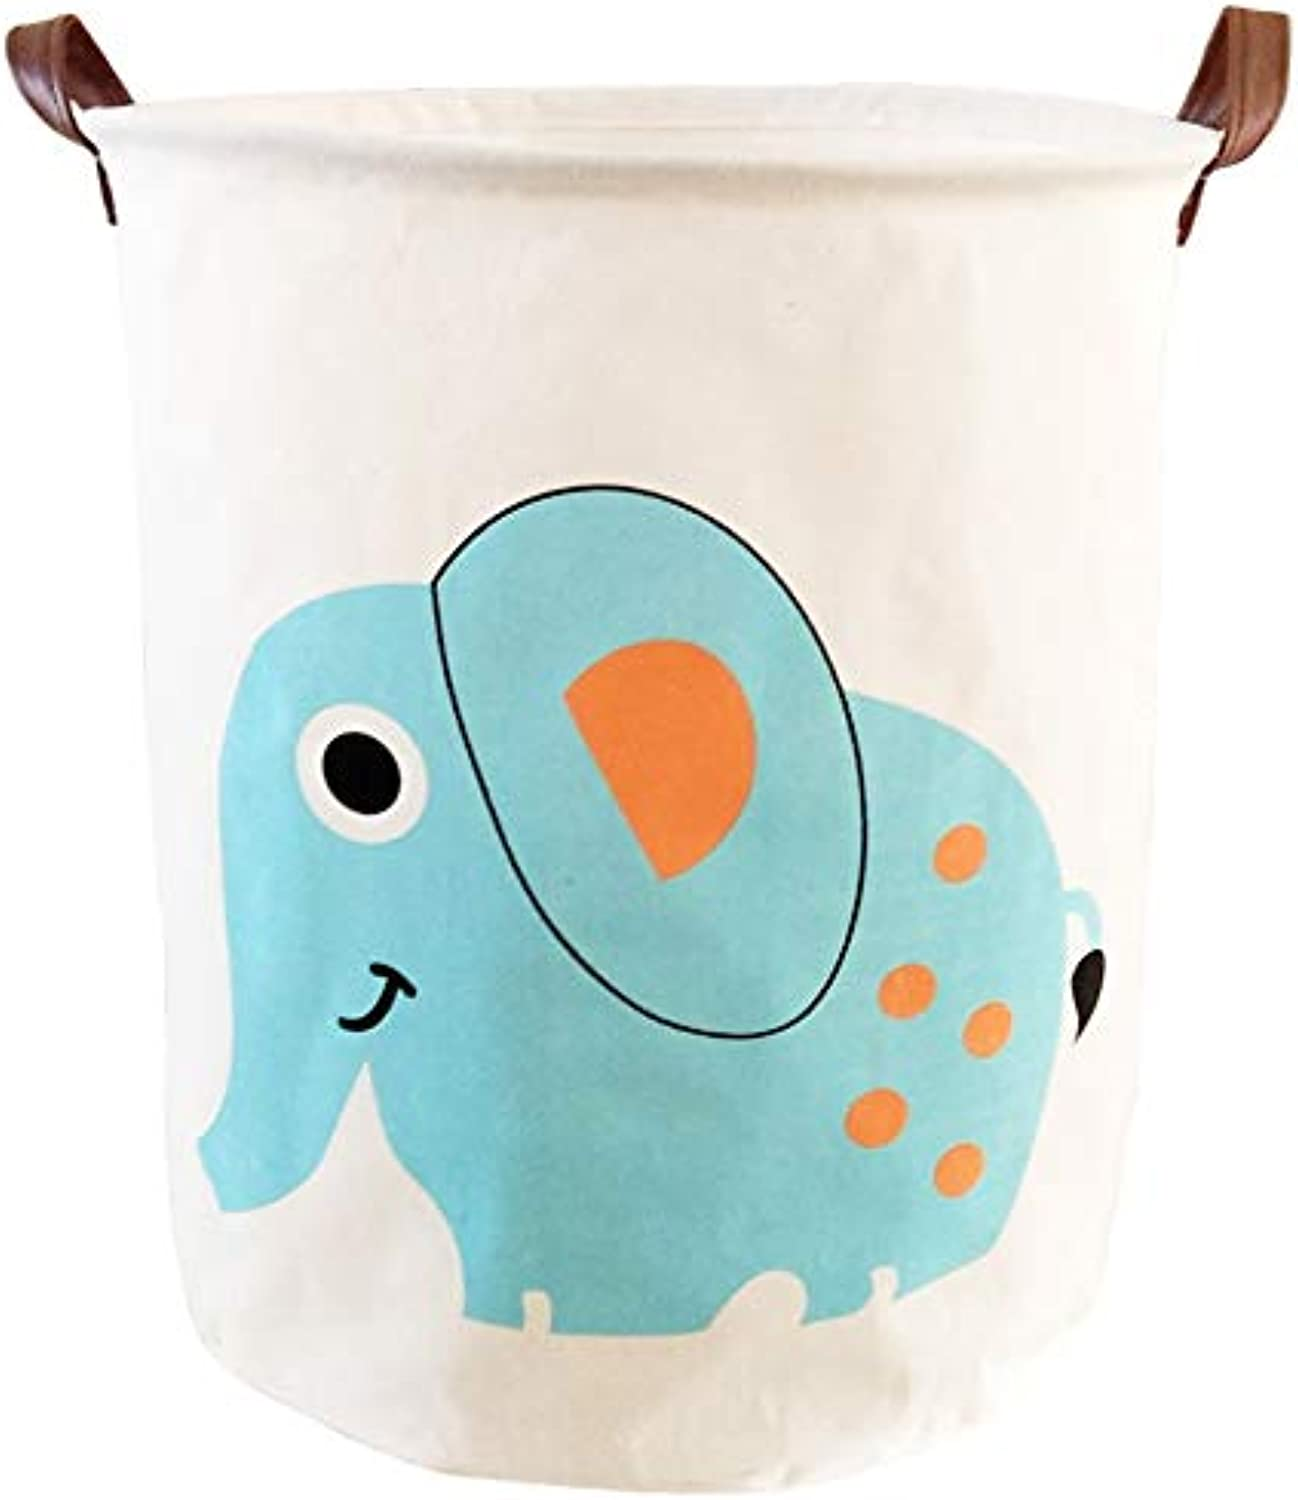 BOOHIT Storage Baskets,Canvas Fabric Laundry Hamper-Collapsible Storage Bin with Handles,Toy Organizer Bin for Kid's Room,Office,Nursery Hamper, Home Decor(Elephant)